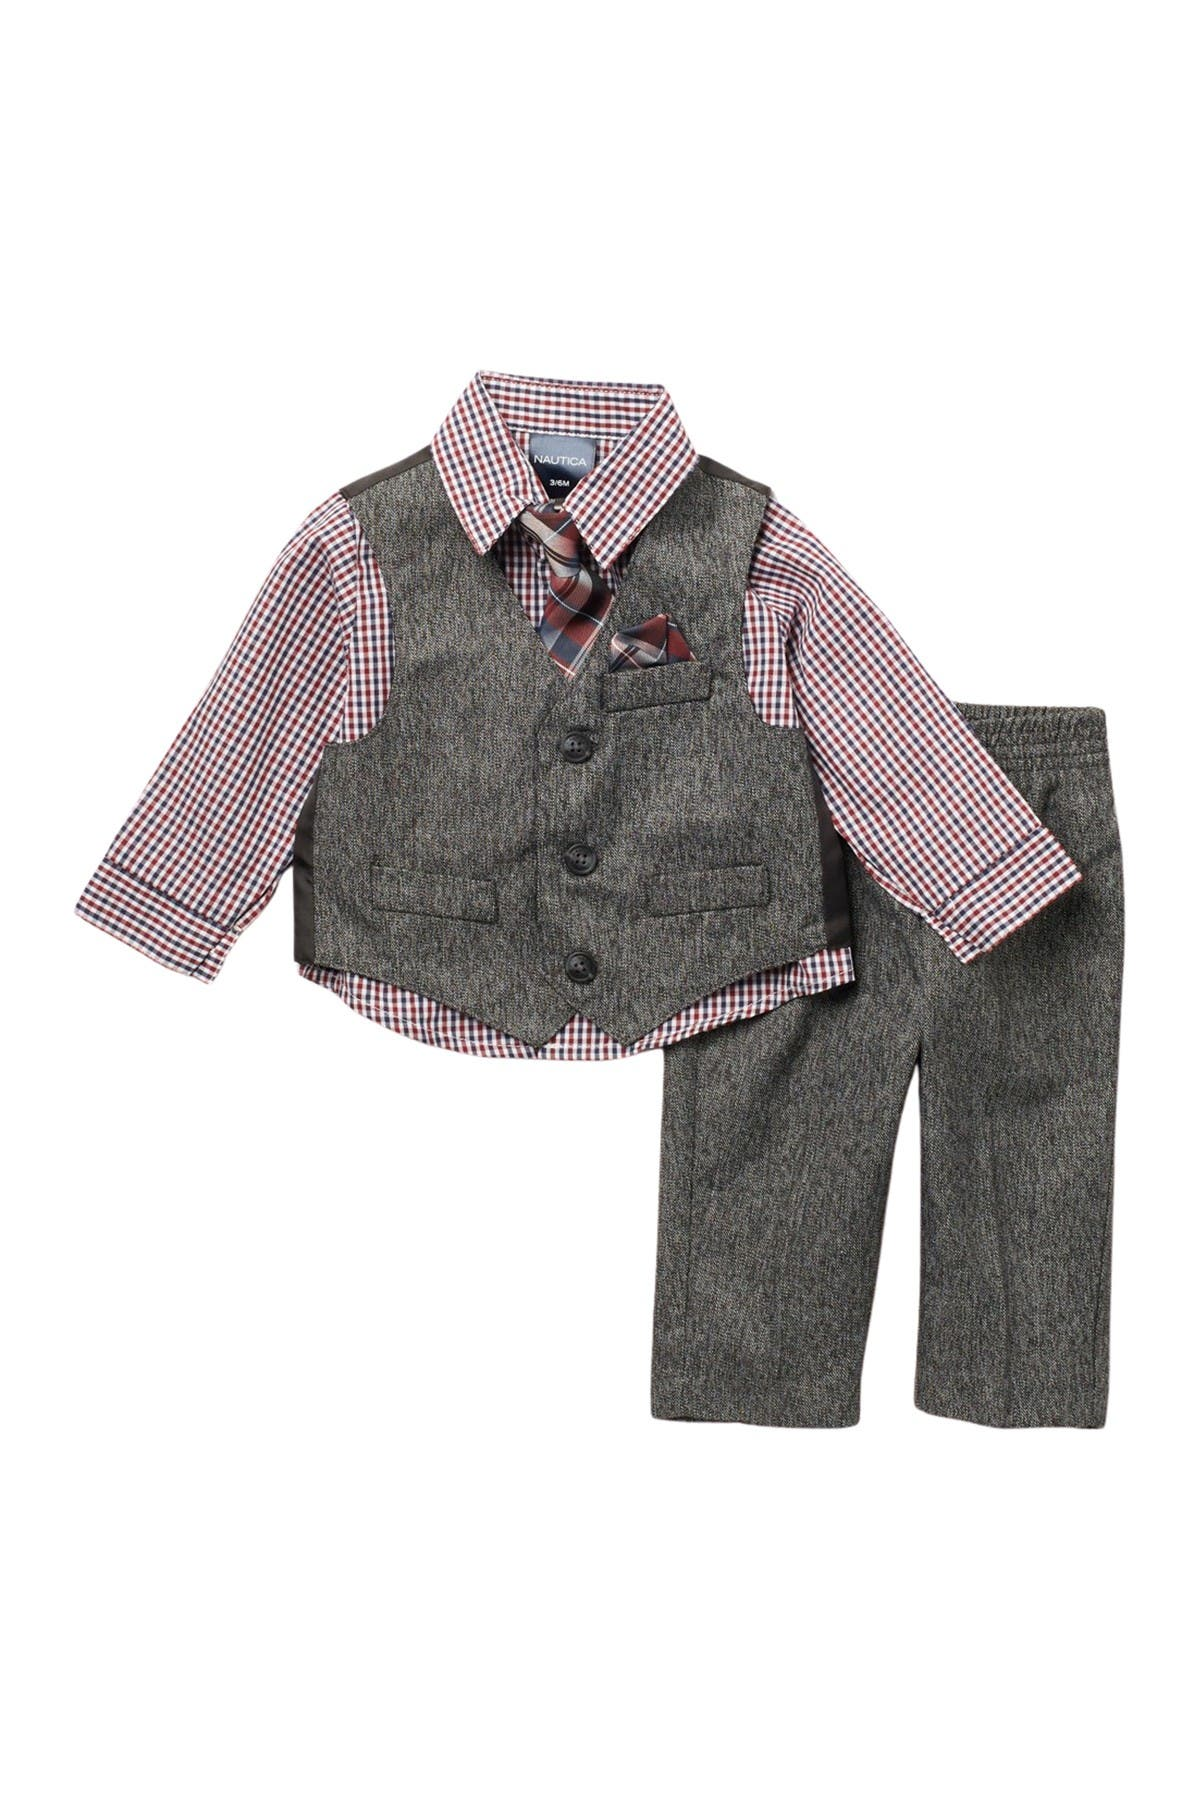 Image of Nautica Holiday Twist Vest 3-Piece Set